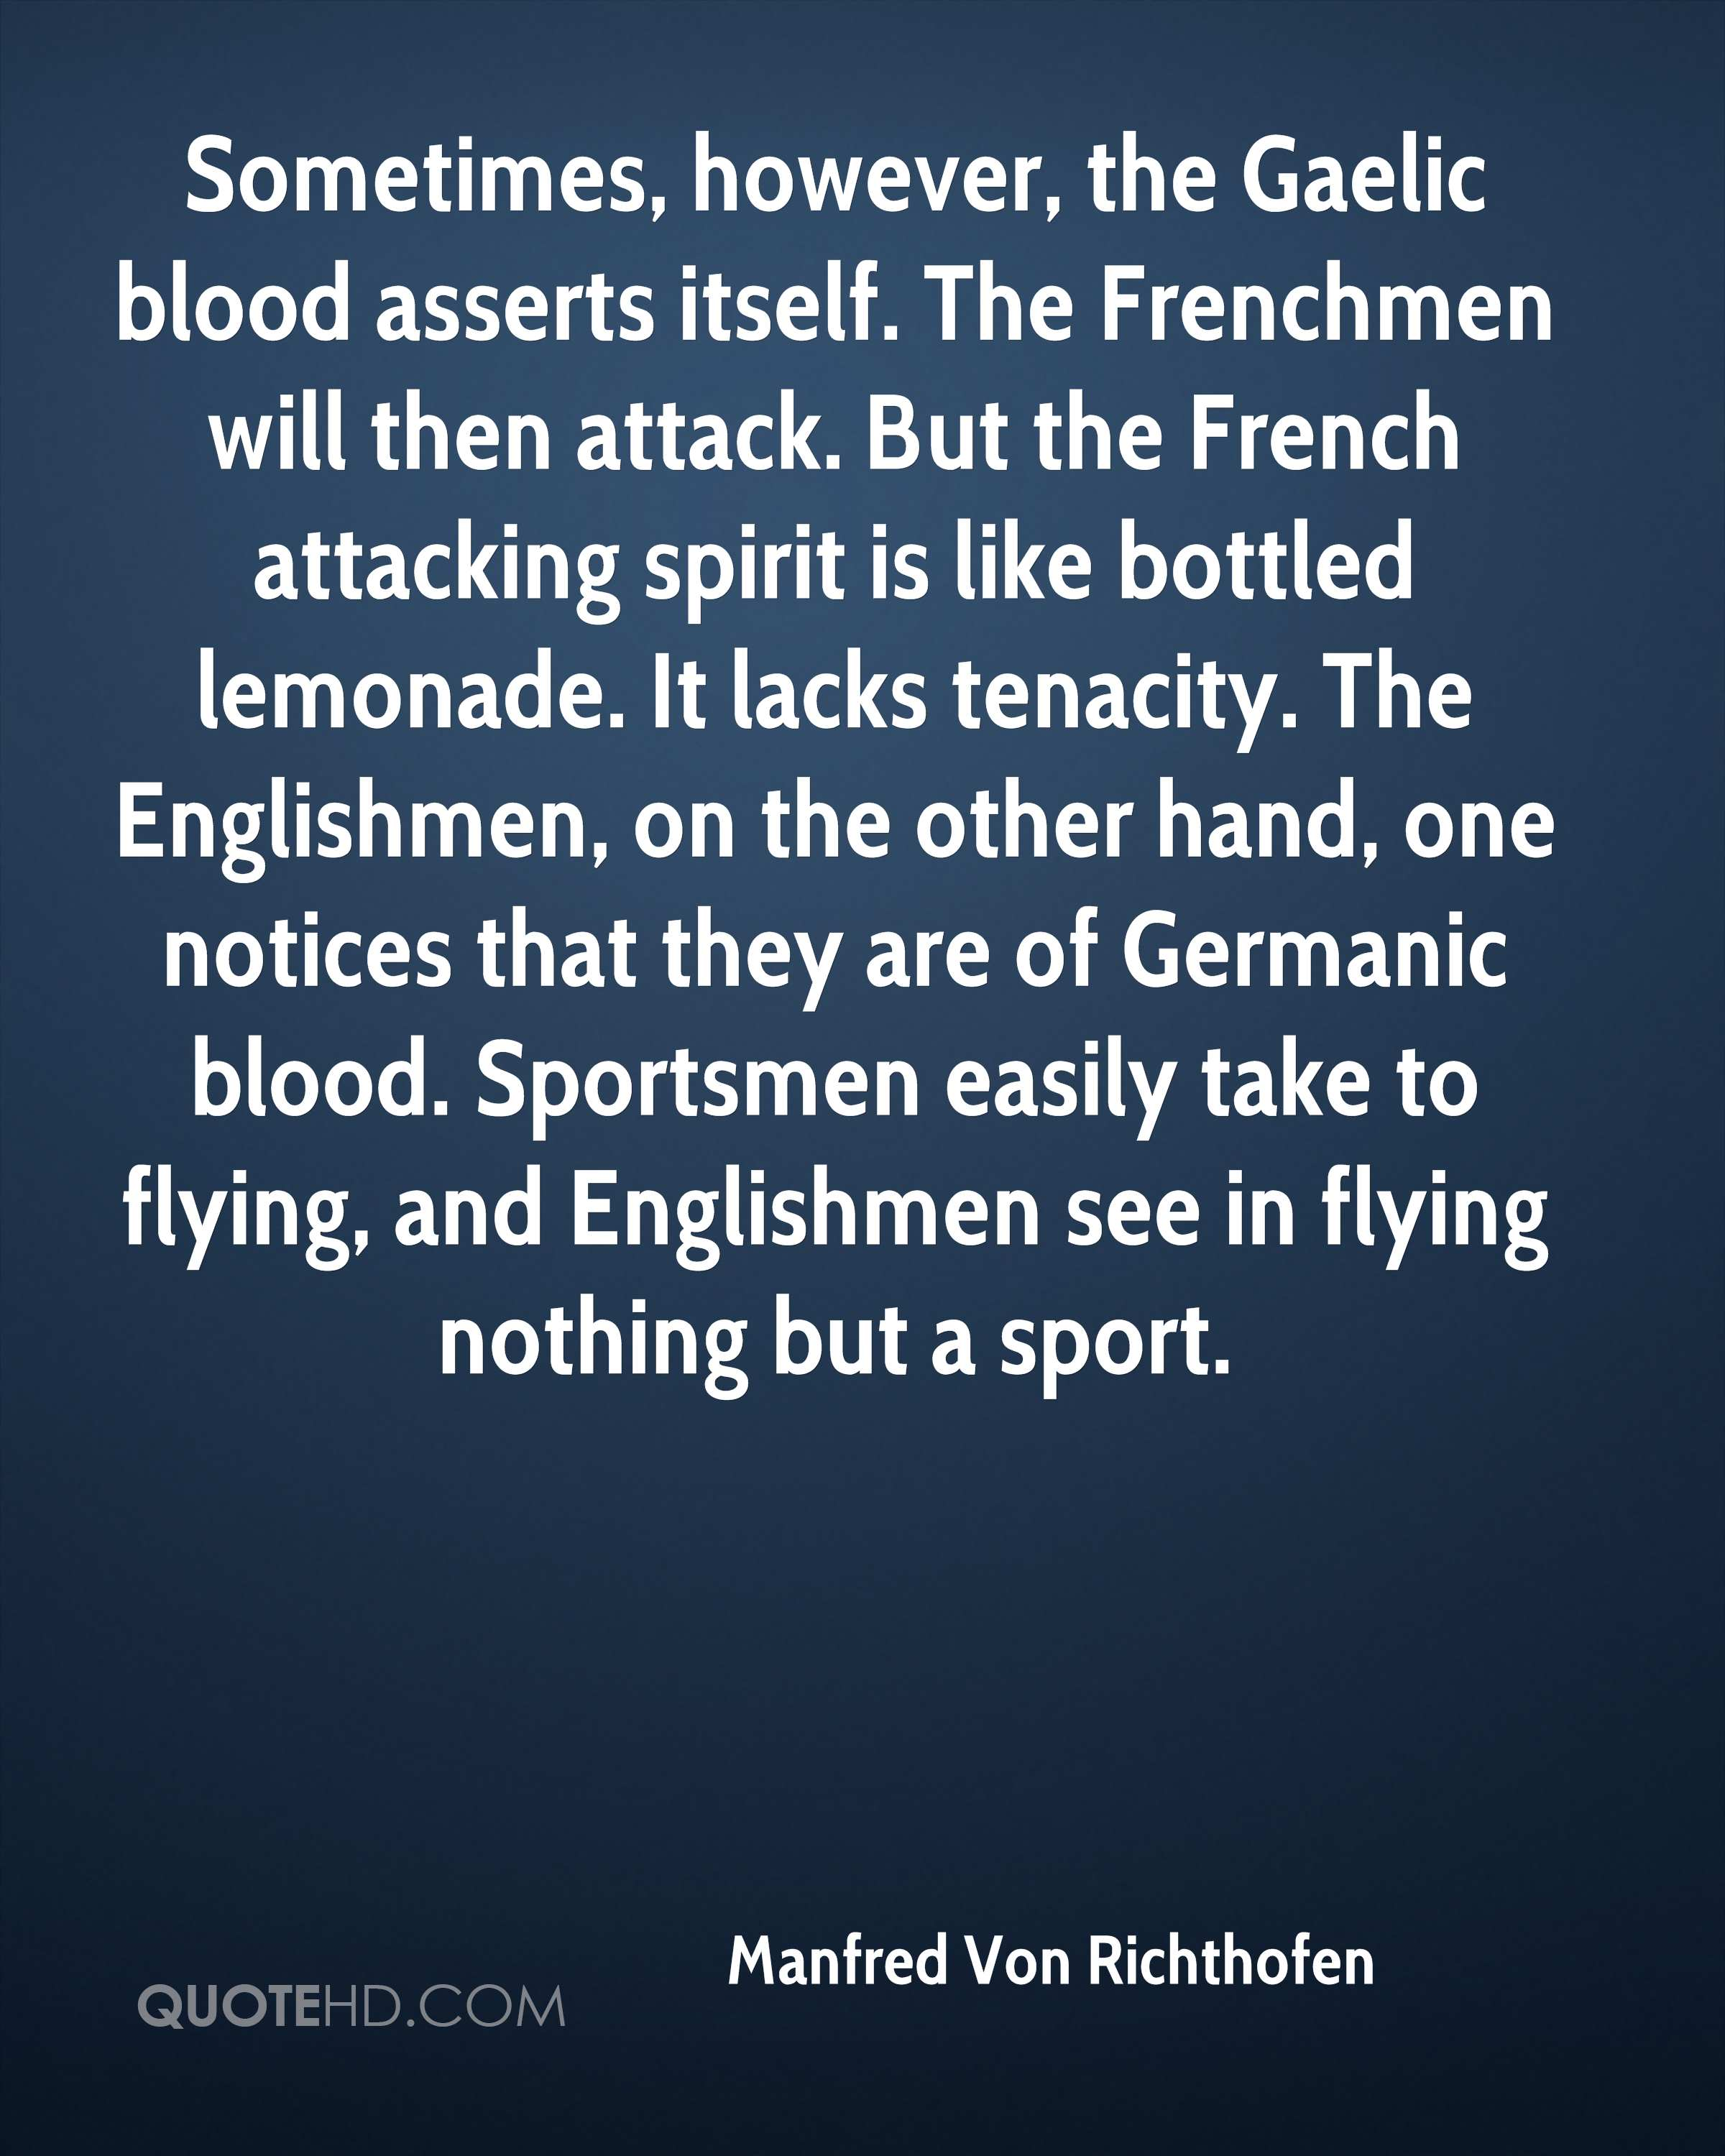 Sometimes, however, the Gaelic blood asserts itself. The Frenchmen will then attack. But the French attacking spirit is like bottled lemonade. It lacks tenacity. The Englishmen, on the other hand, one notices that they are of Germanic blood. Sportsmen easily take to flying, and Englishmen see in flying nothing but a sport.